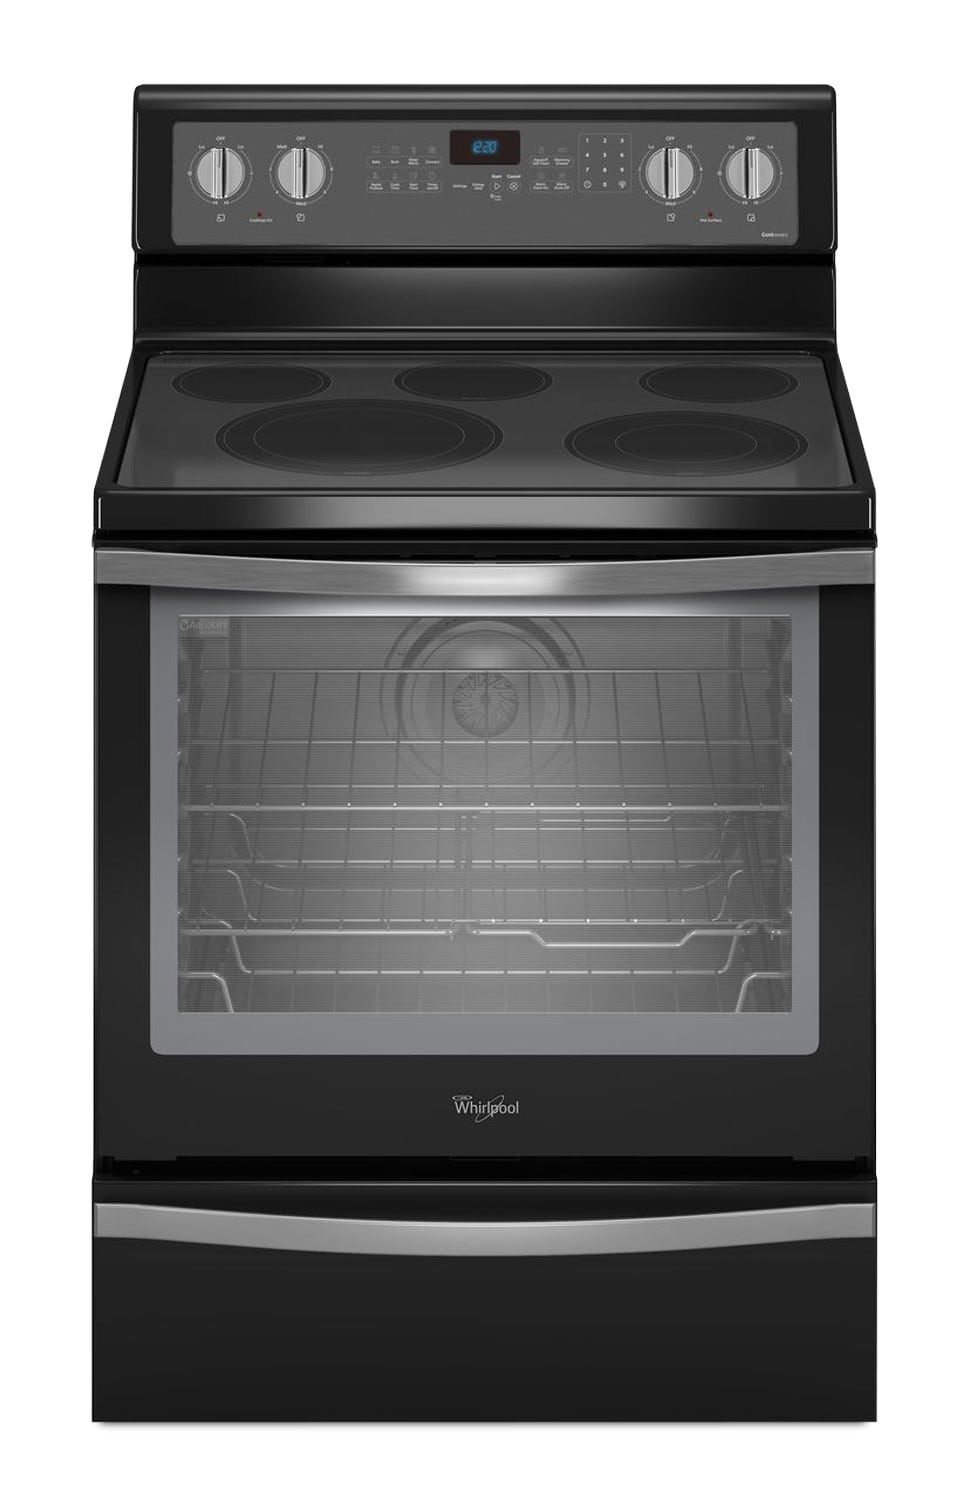 Cooking Products - Whirlpool Black Freestanding Electric Convection Range (6.4 Cu. Ft.) - YWFE715H0EE